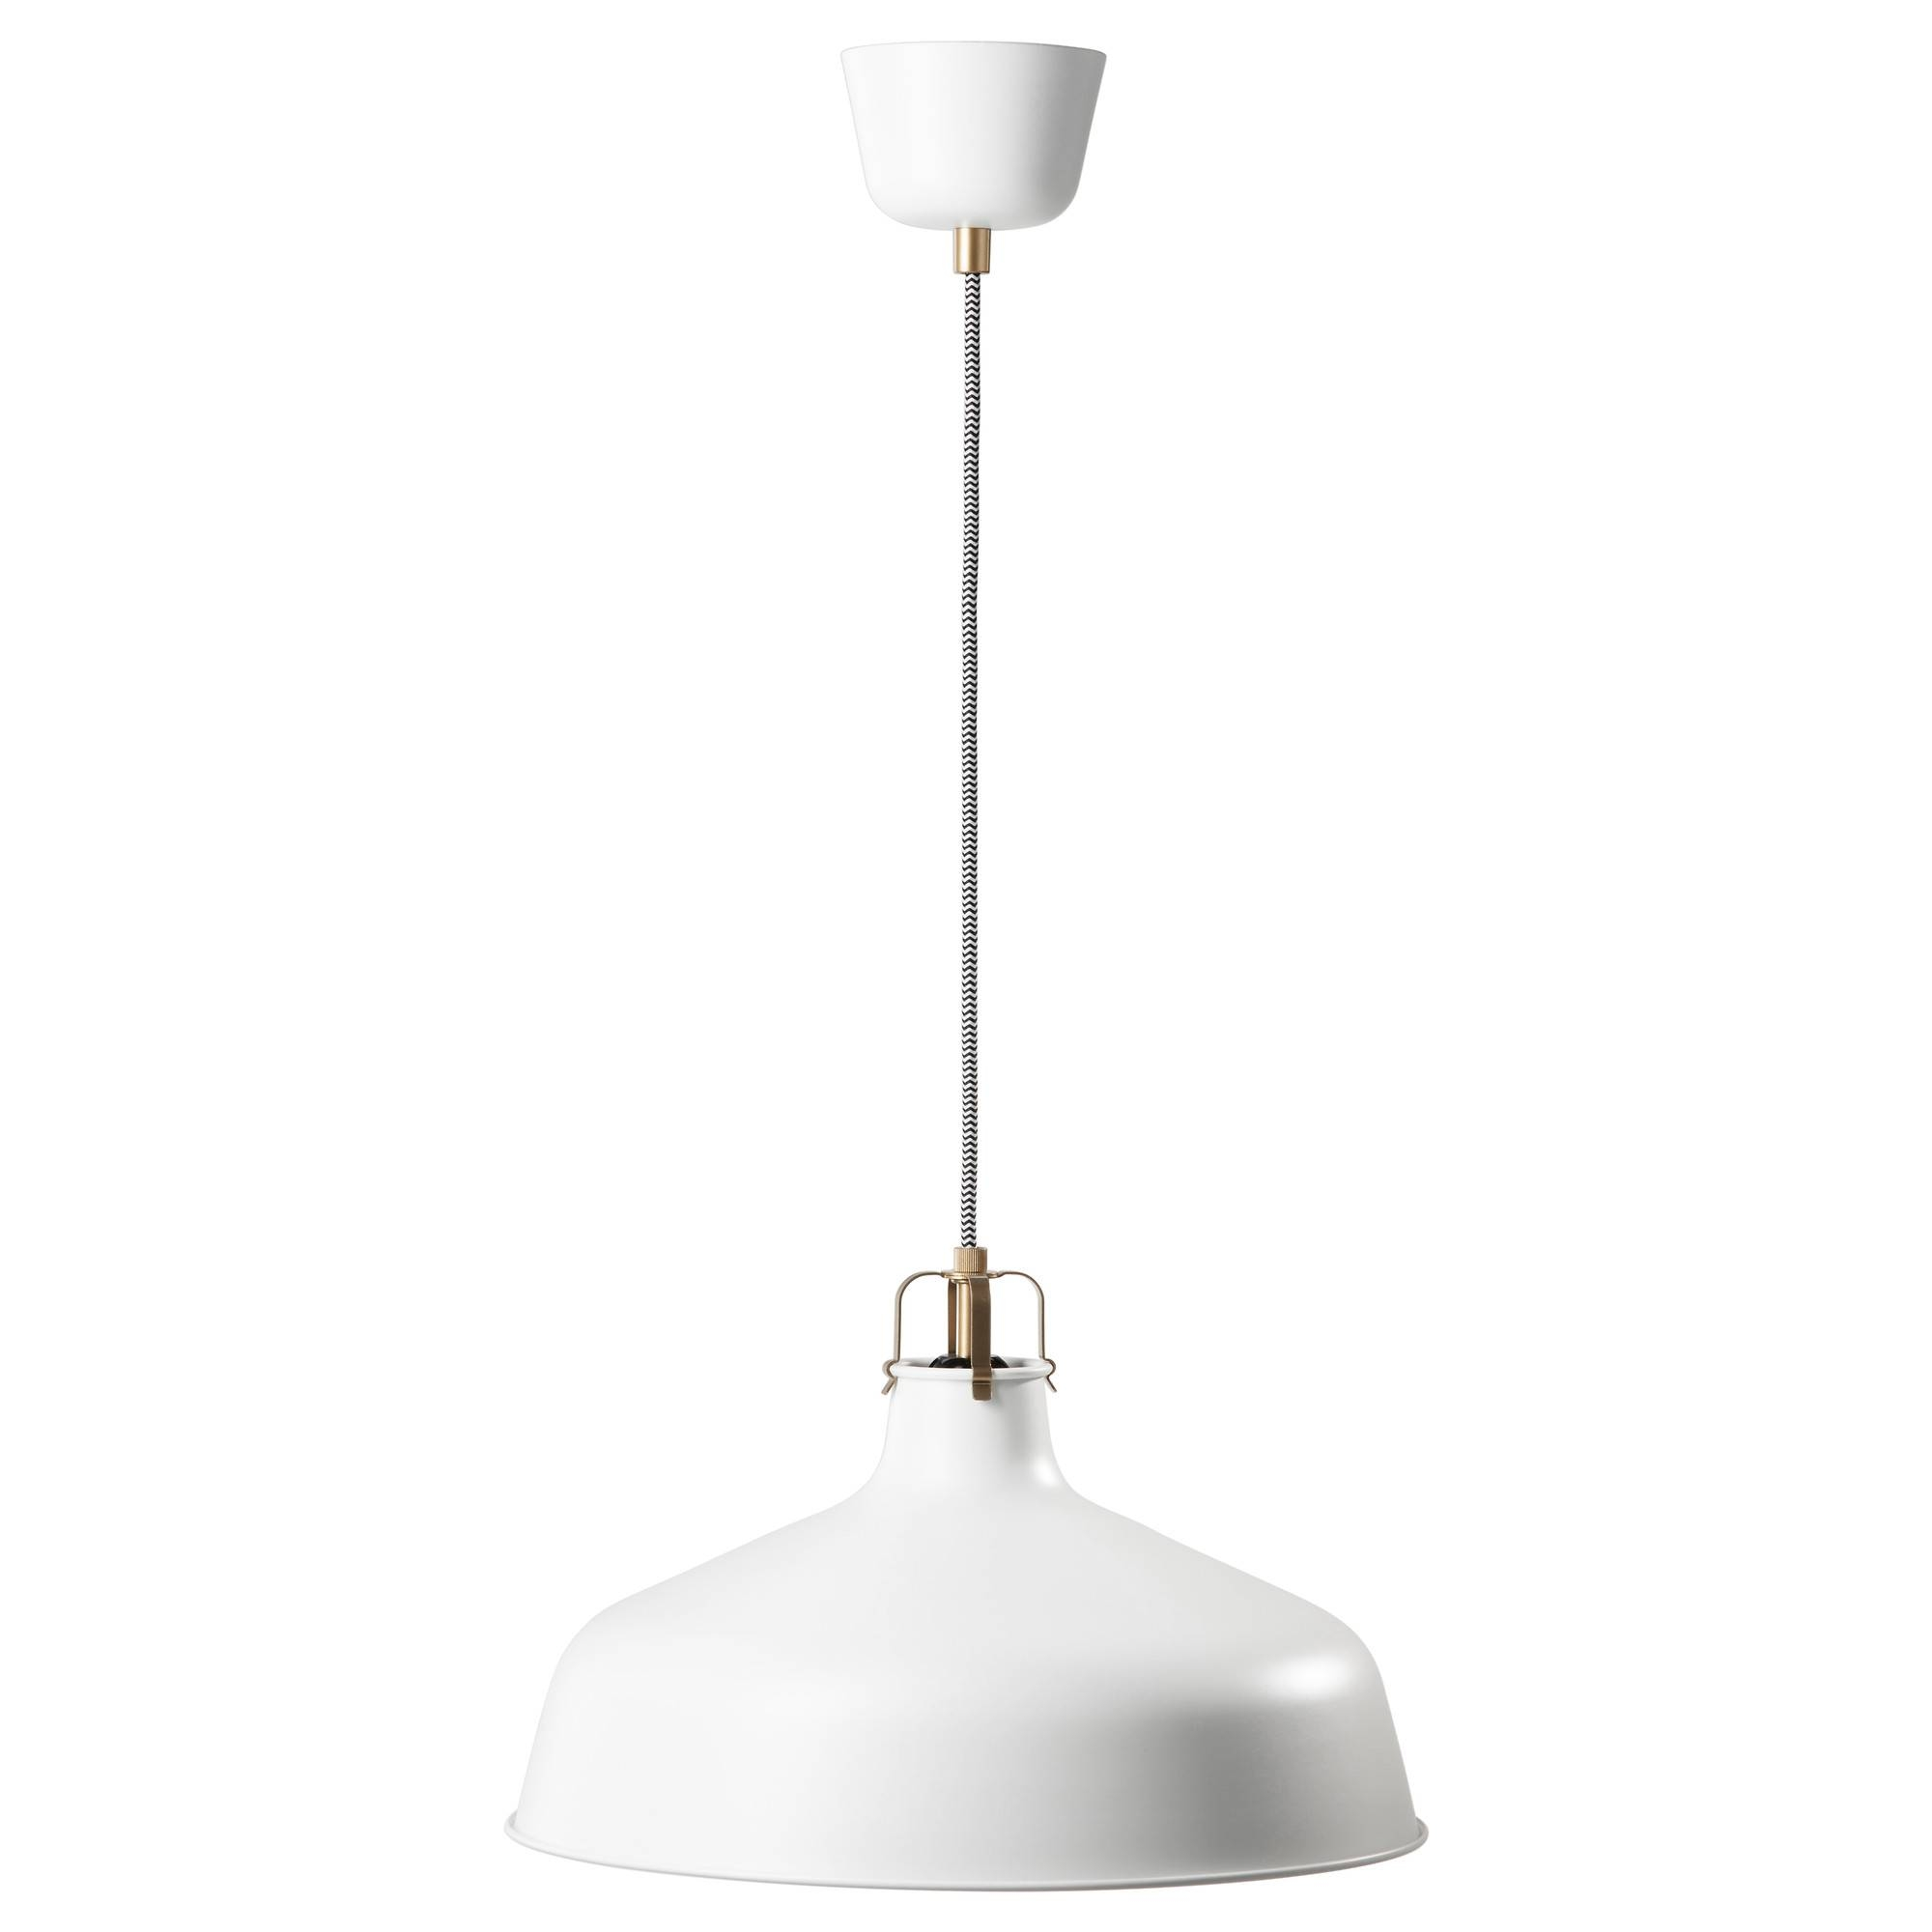 Ranarp Pendant Lamp - Off-White - Ikea inside Ikea Pendant Lights (Image 12 of 15)